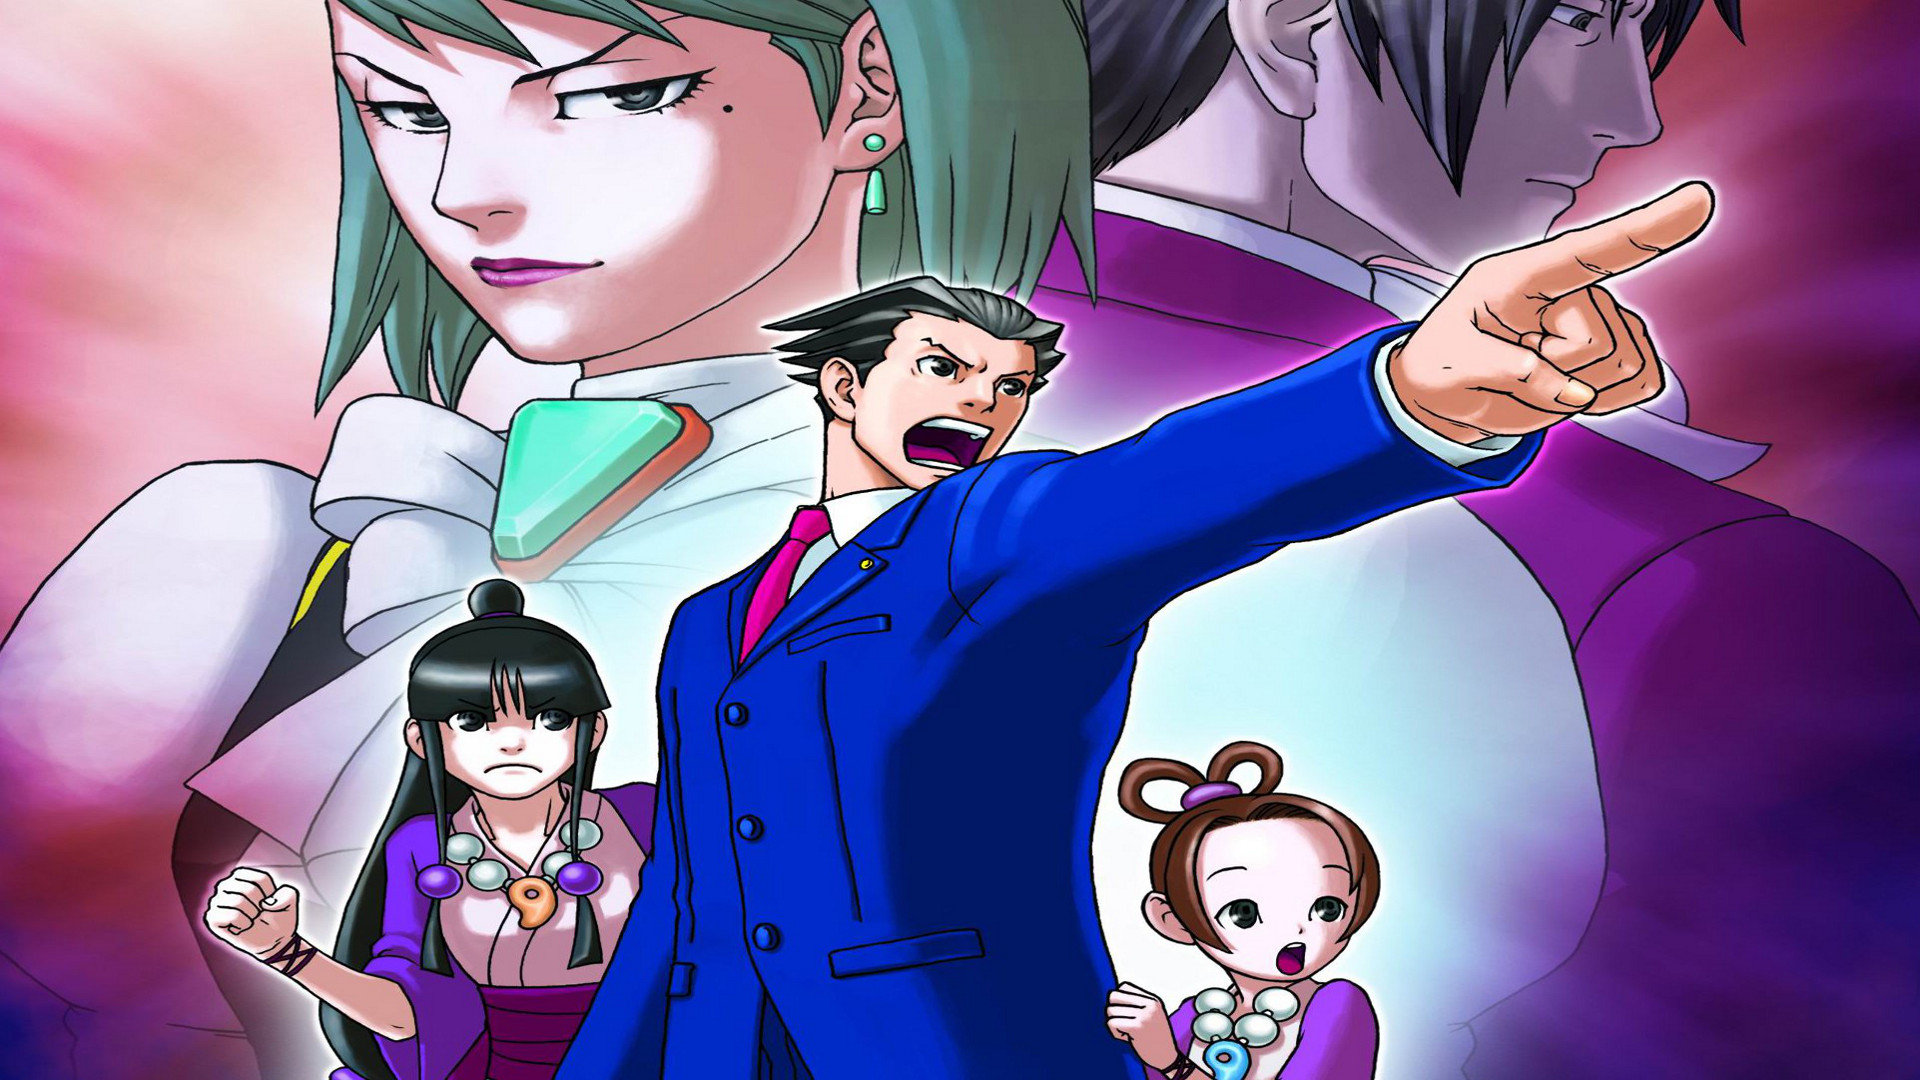 Download 1080p Phoenix Wright Ace Attorney PC Wallpaper ID132211 For Free